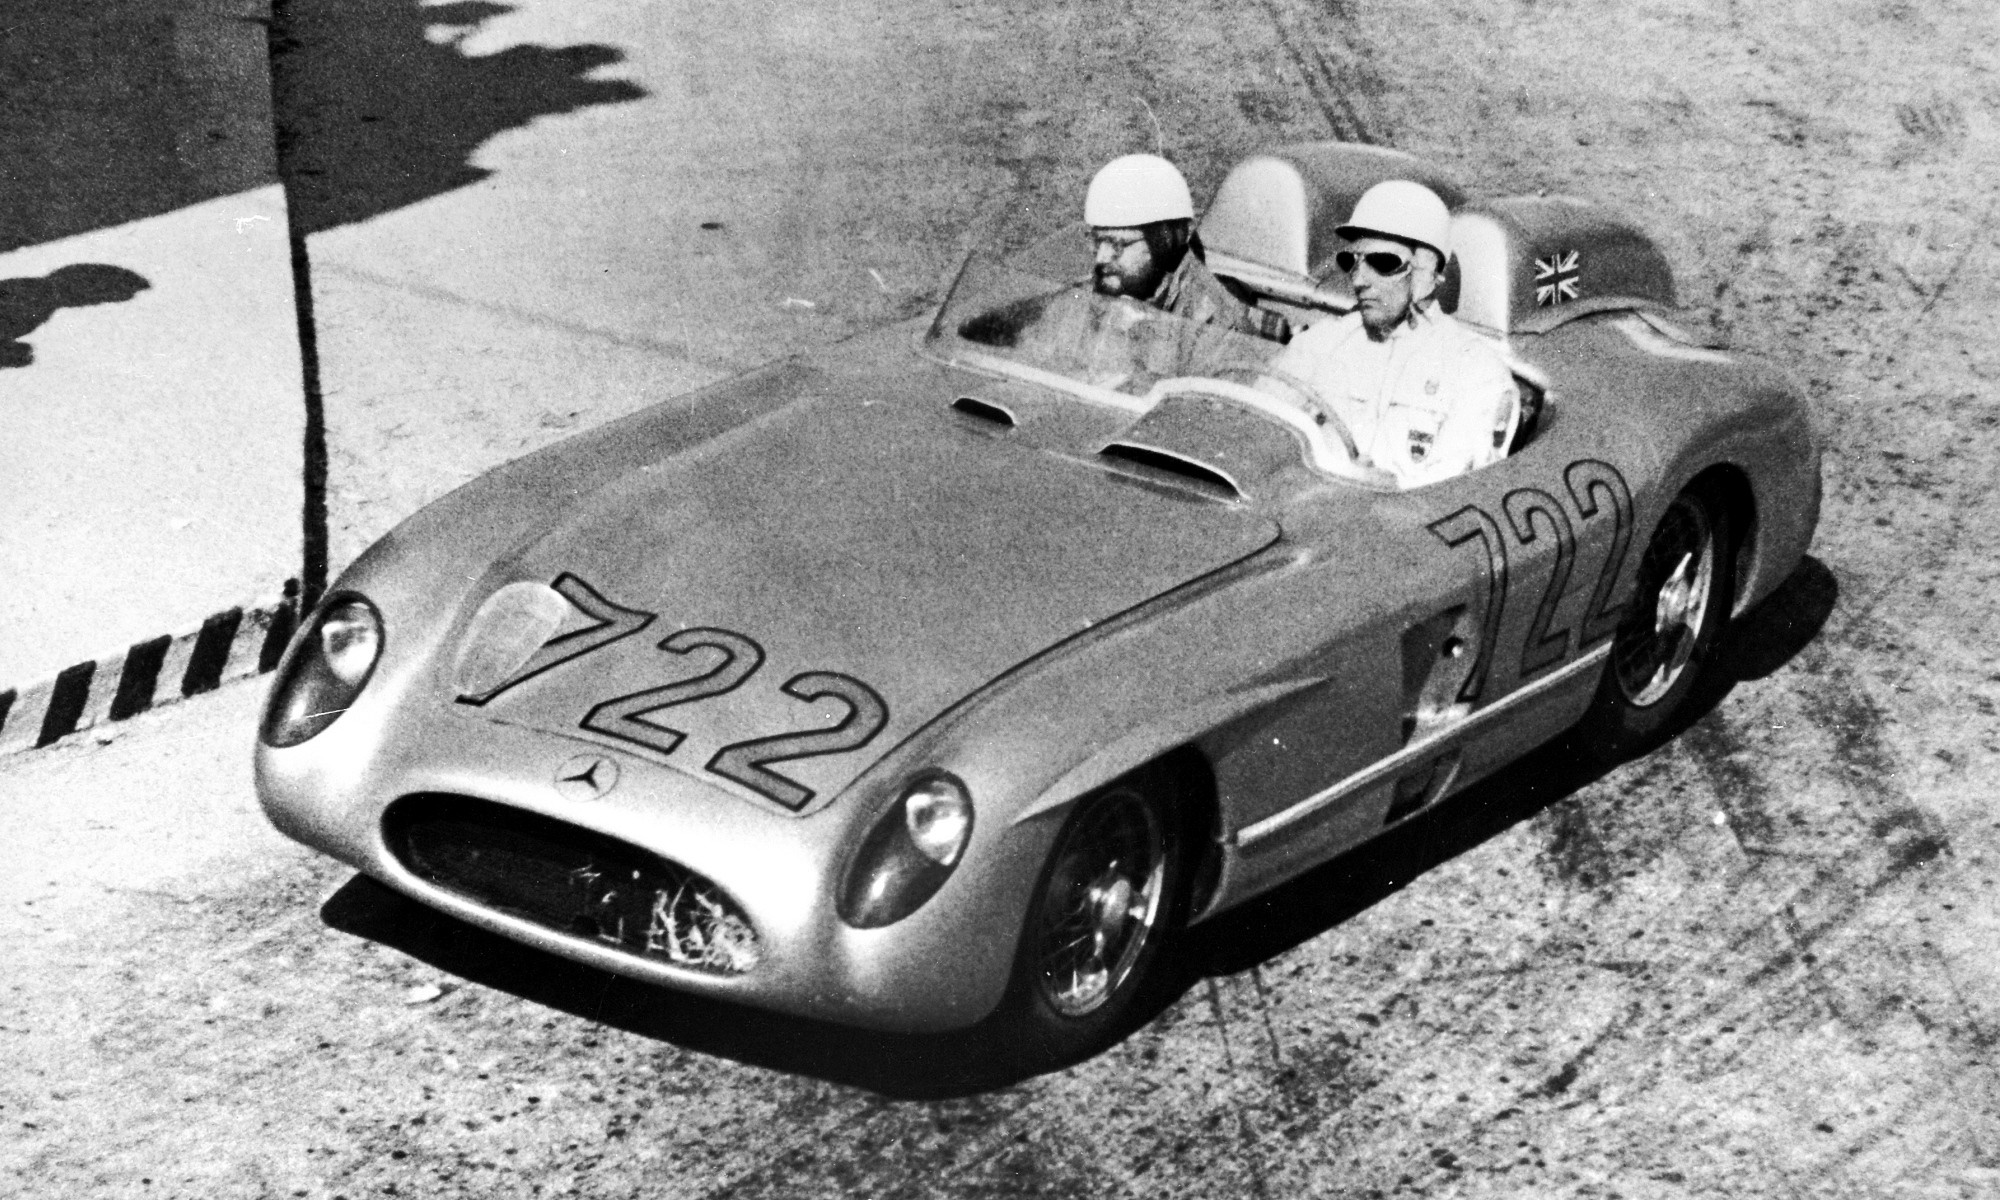 Stirling Moss with his co-driver Denis Jenkinson on the Mille Miglia road race in Mercedes-Benz 300SLR.